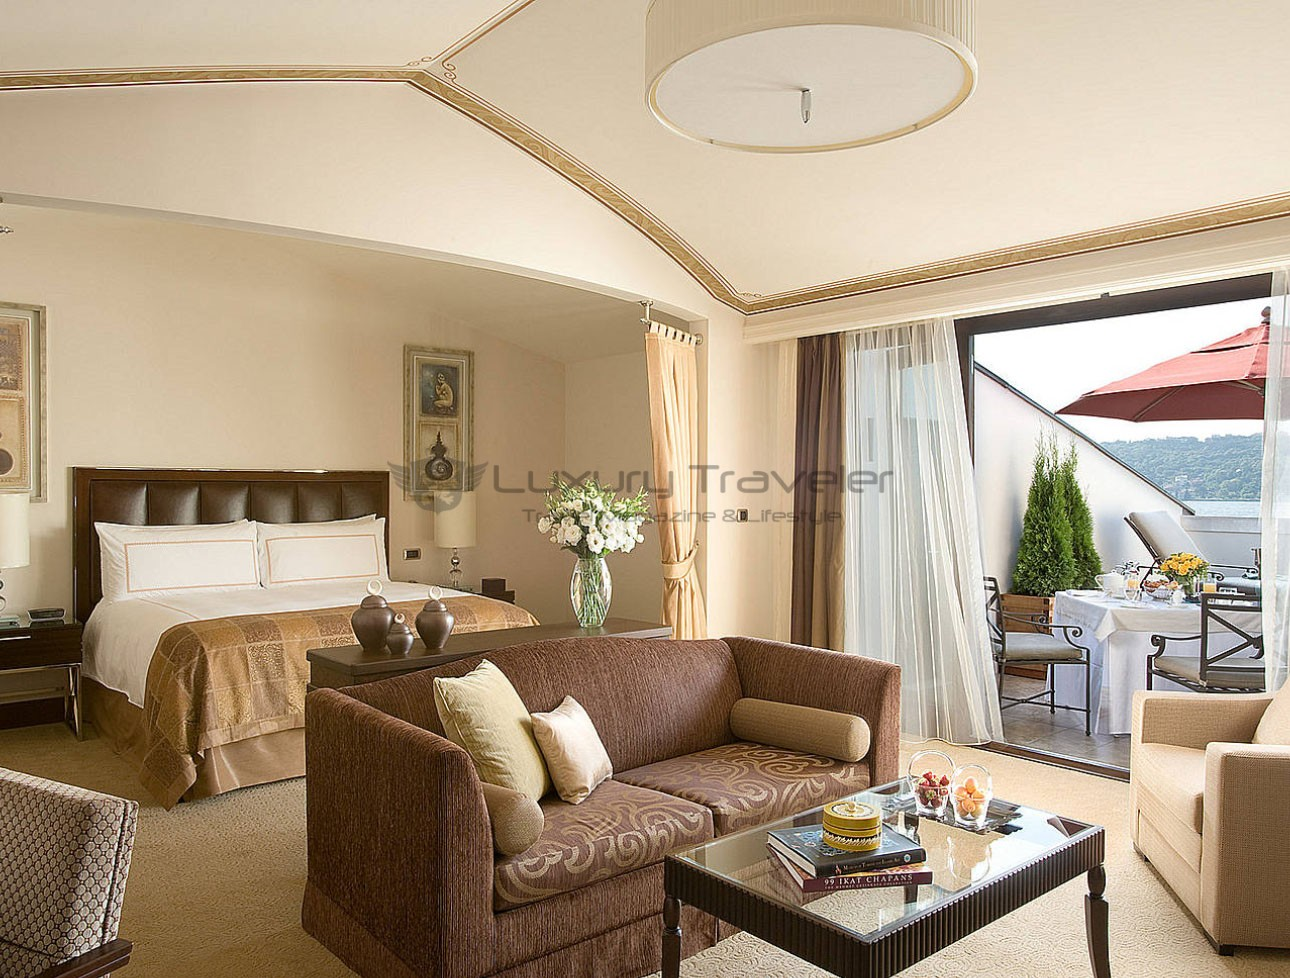 Four_Seasons_Bosphorus_Istanbul_Hotel_Suite